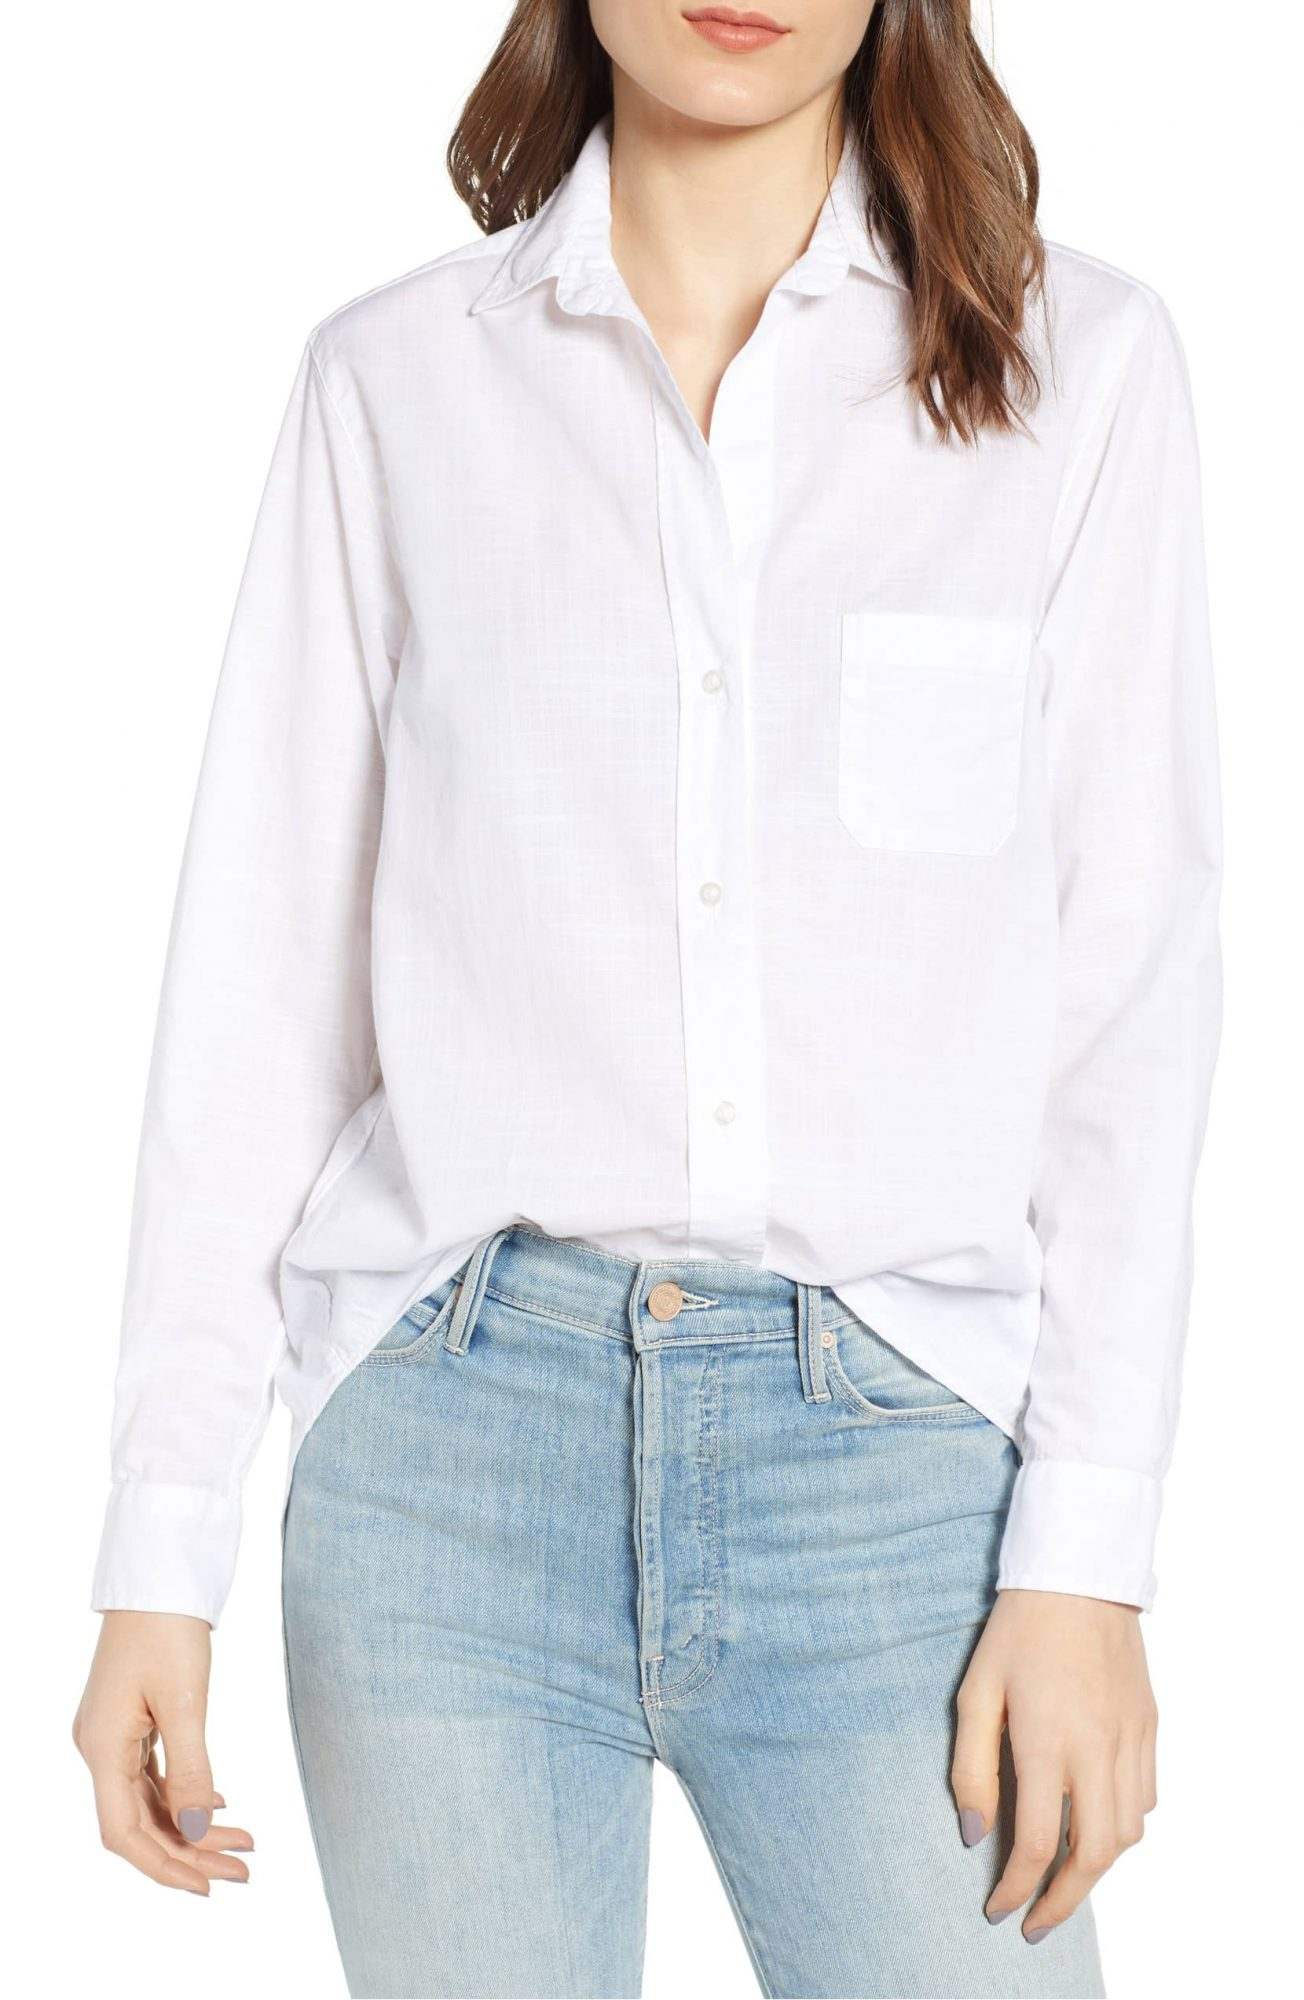 White button-up from Grayson at Nordstrom